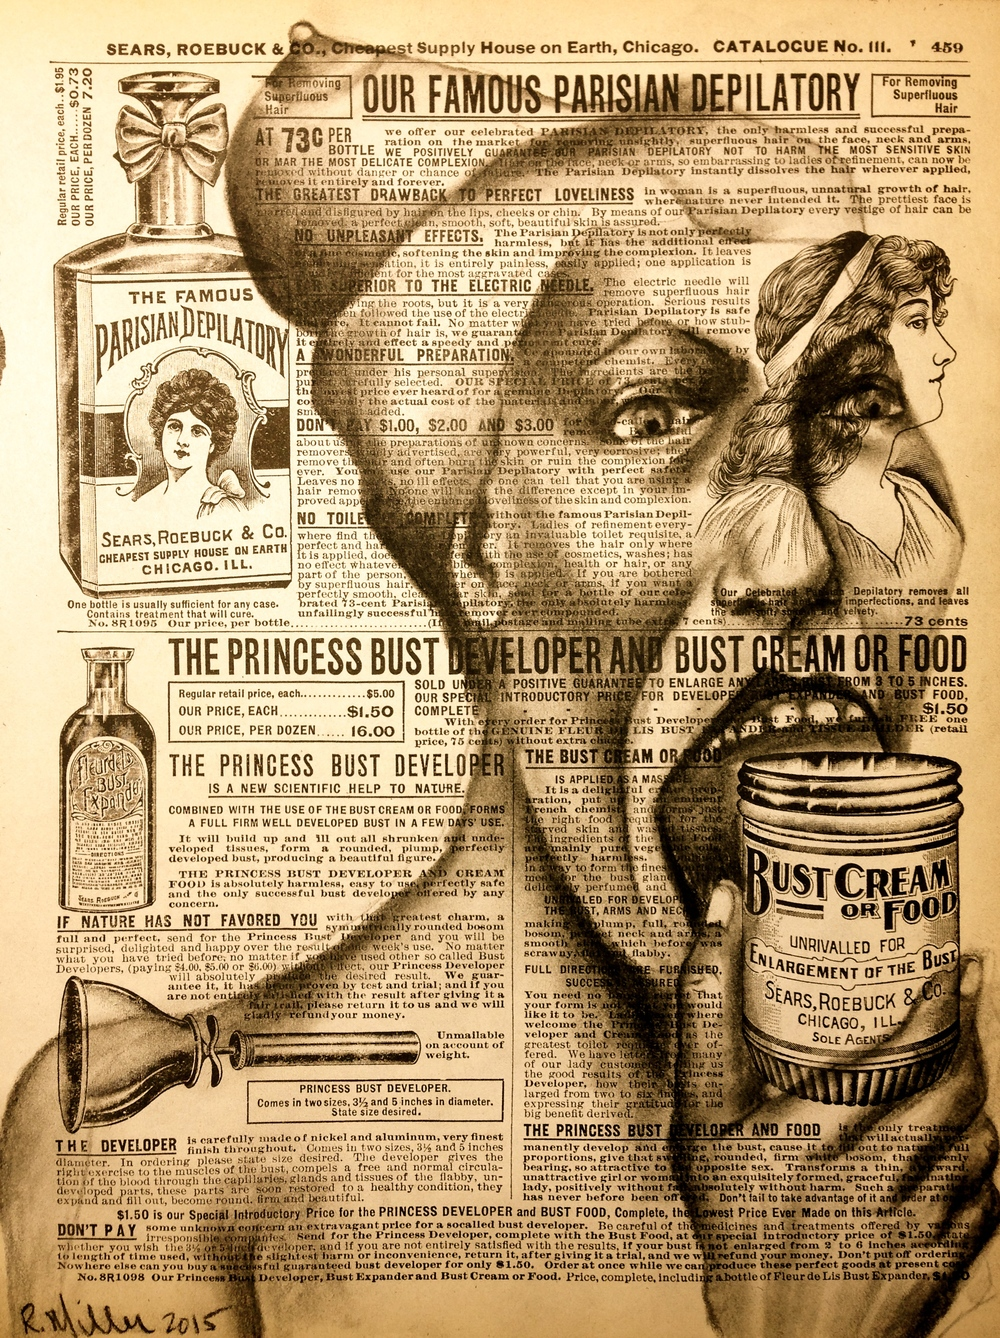 """Busted Food, made by Monsanto; Some Side effects may include: boobhead, fever, headache, loss of appetite, leg shrinkage, hip displacement, hemorrhaging, death. Ask your Dr if Bust Cream is right for you?"" 2015 Charcoal on antique catalog"